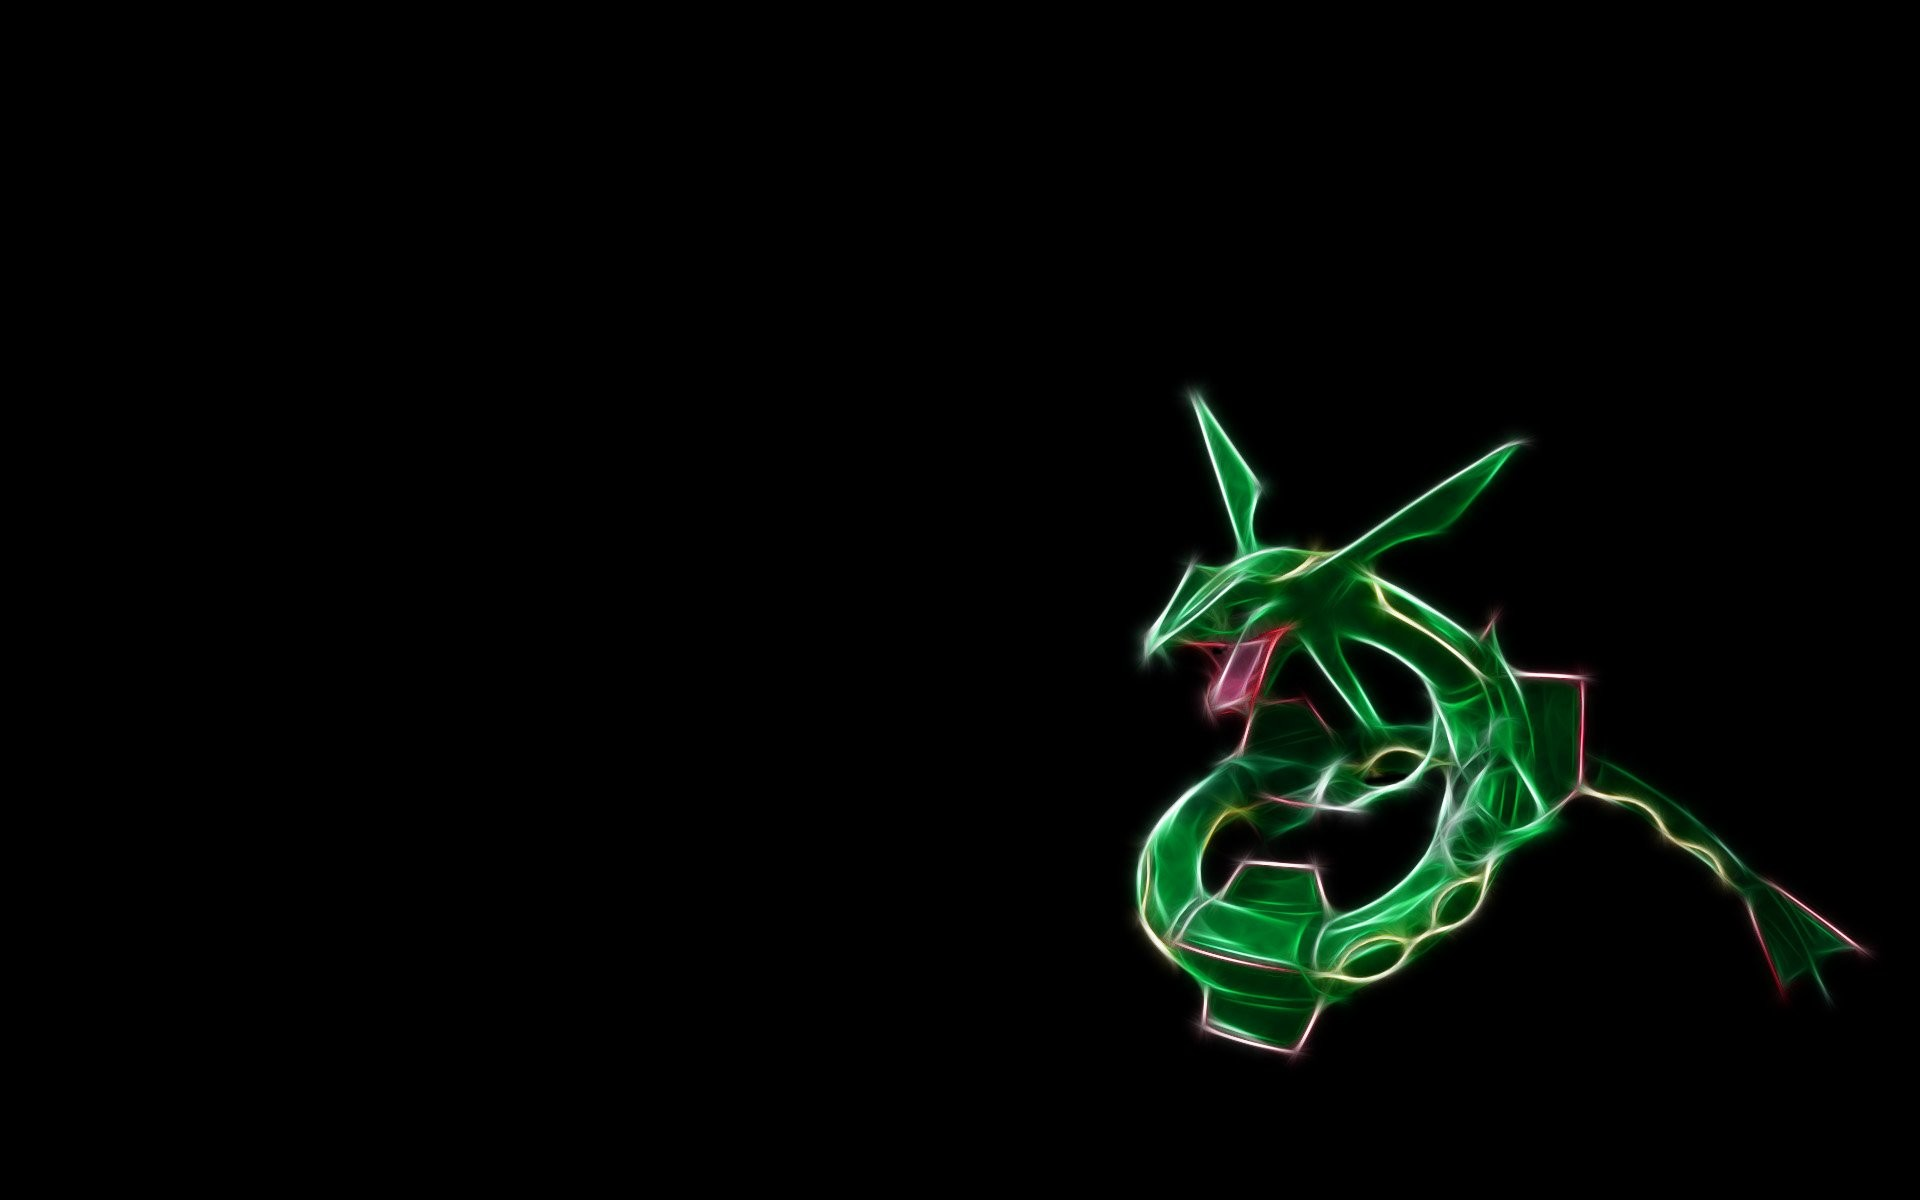 1920x1200 Anime - Pokémon Rayquaza (Pokémon) Legendary Pokémon Wallpaper